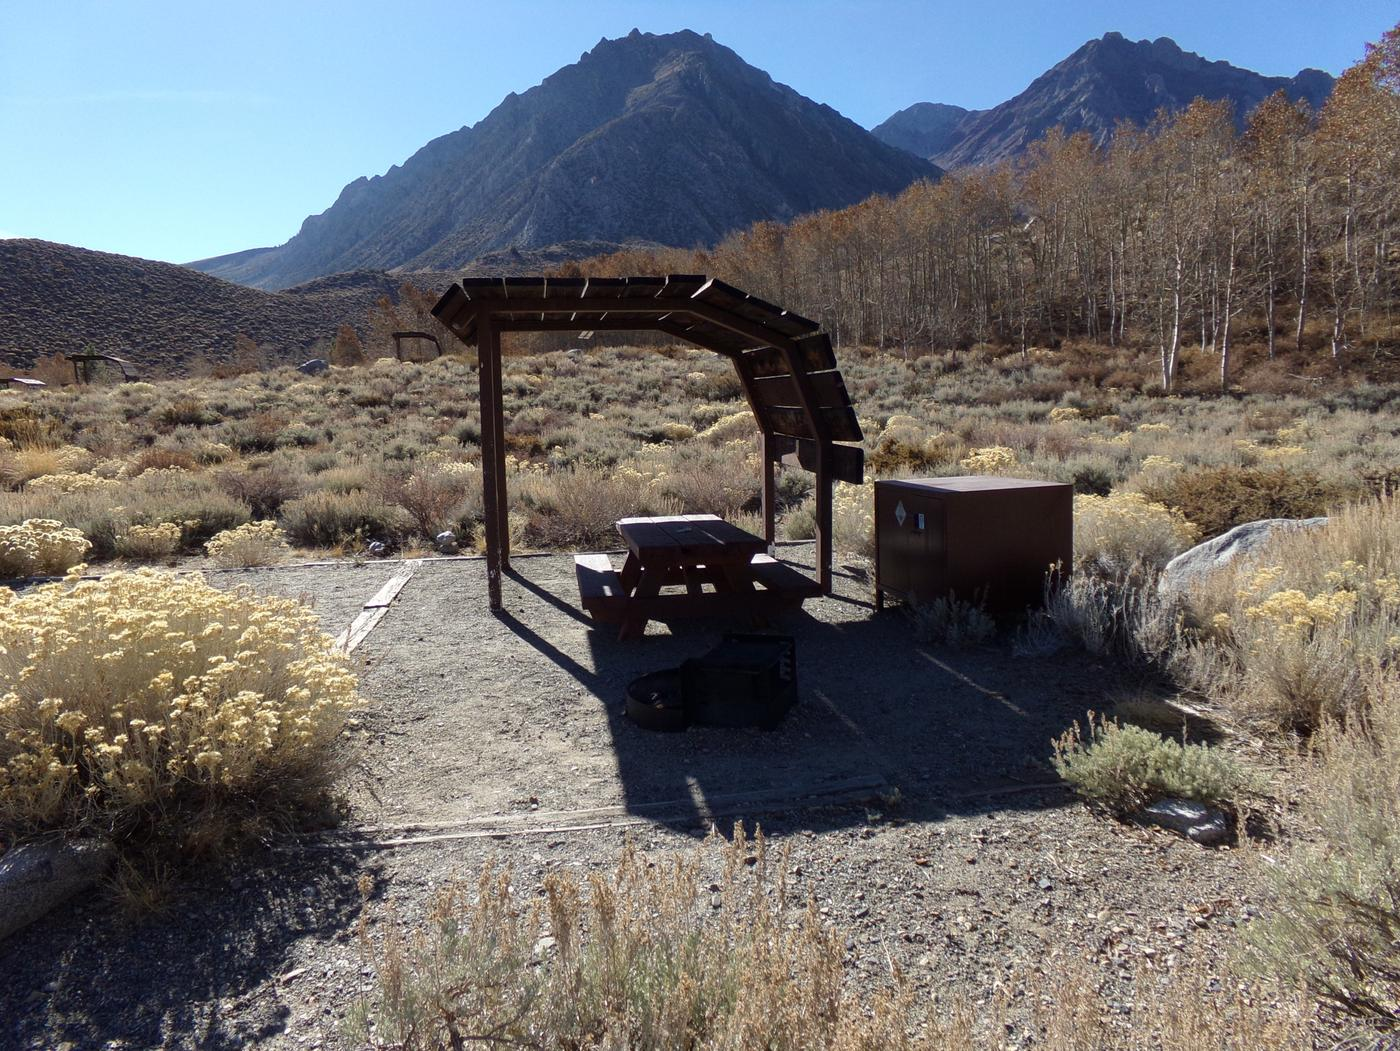 McGee Creek Campground site #16 featuring shaded picnic area with fire pit and camping space.